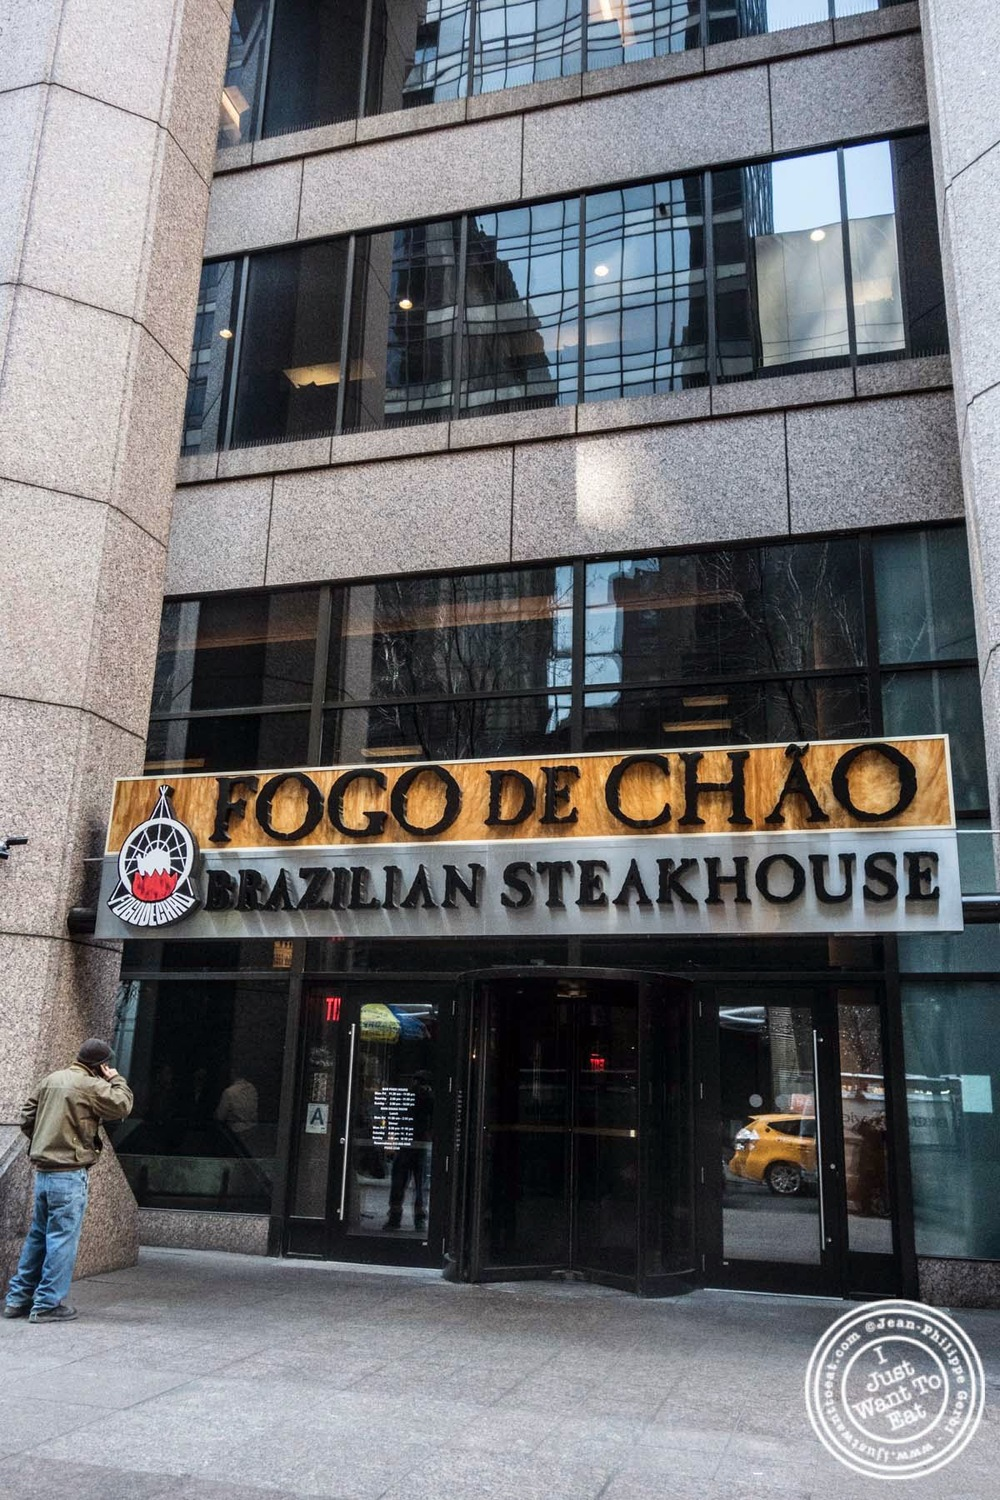 image of Fogo De Chao Brazilian steakhouse in NYC, New York